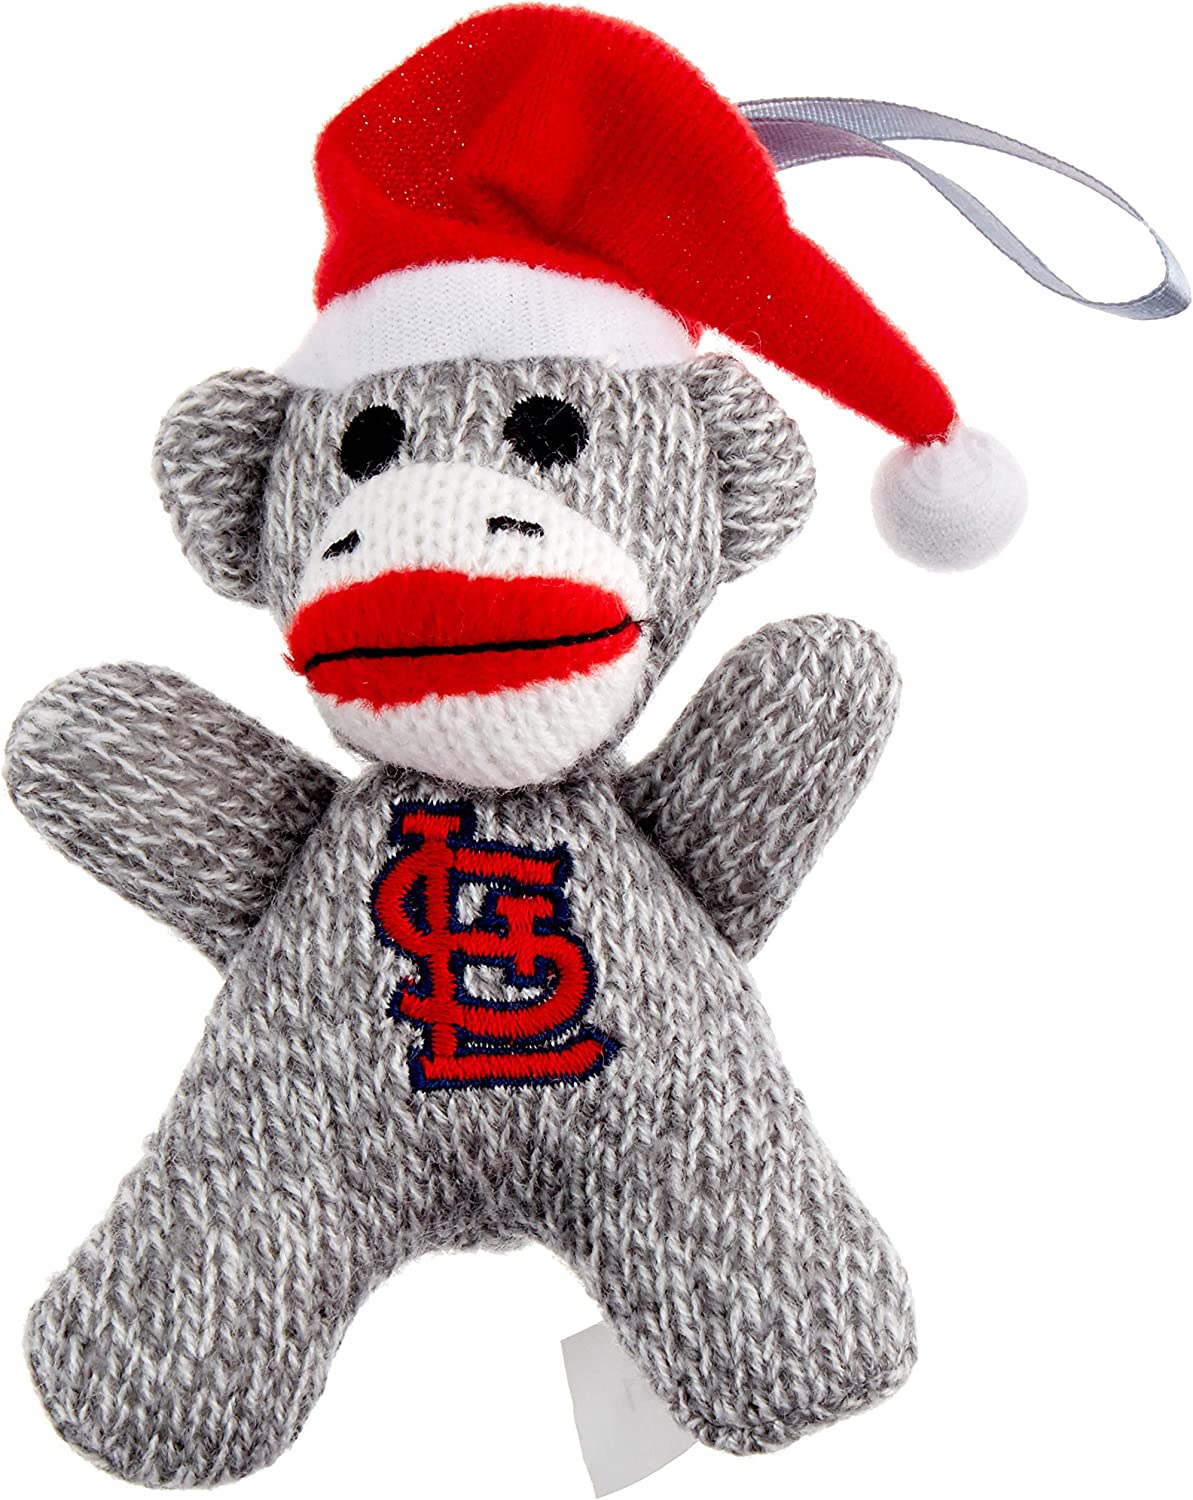 FOCO MLB St. Louis Cardinals (2013 Edition) Sock Monkey Ornament - 2-Pack